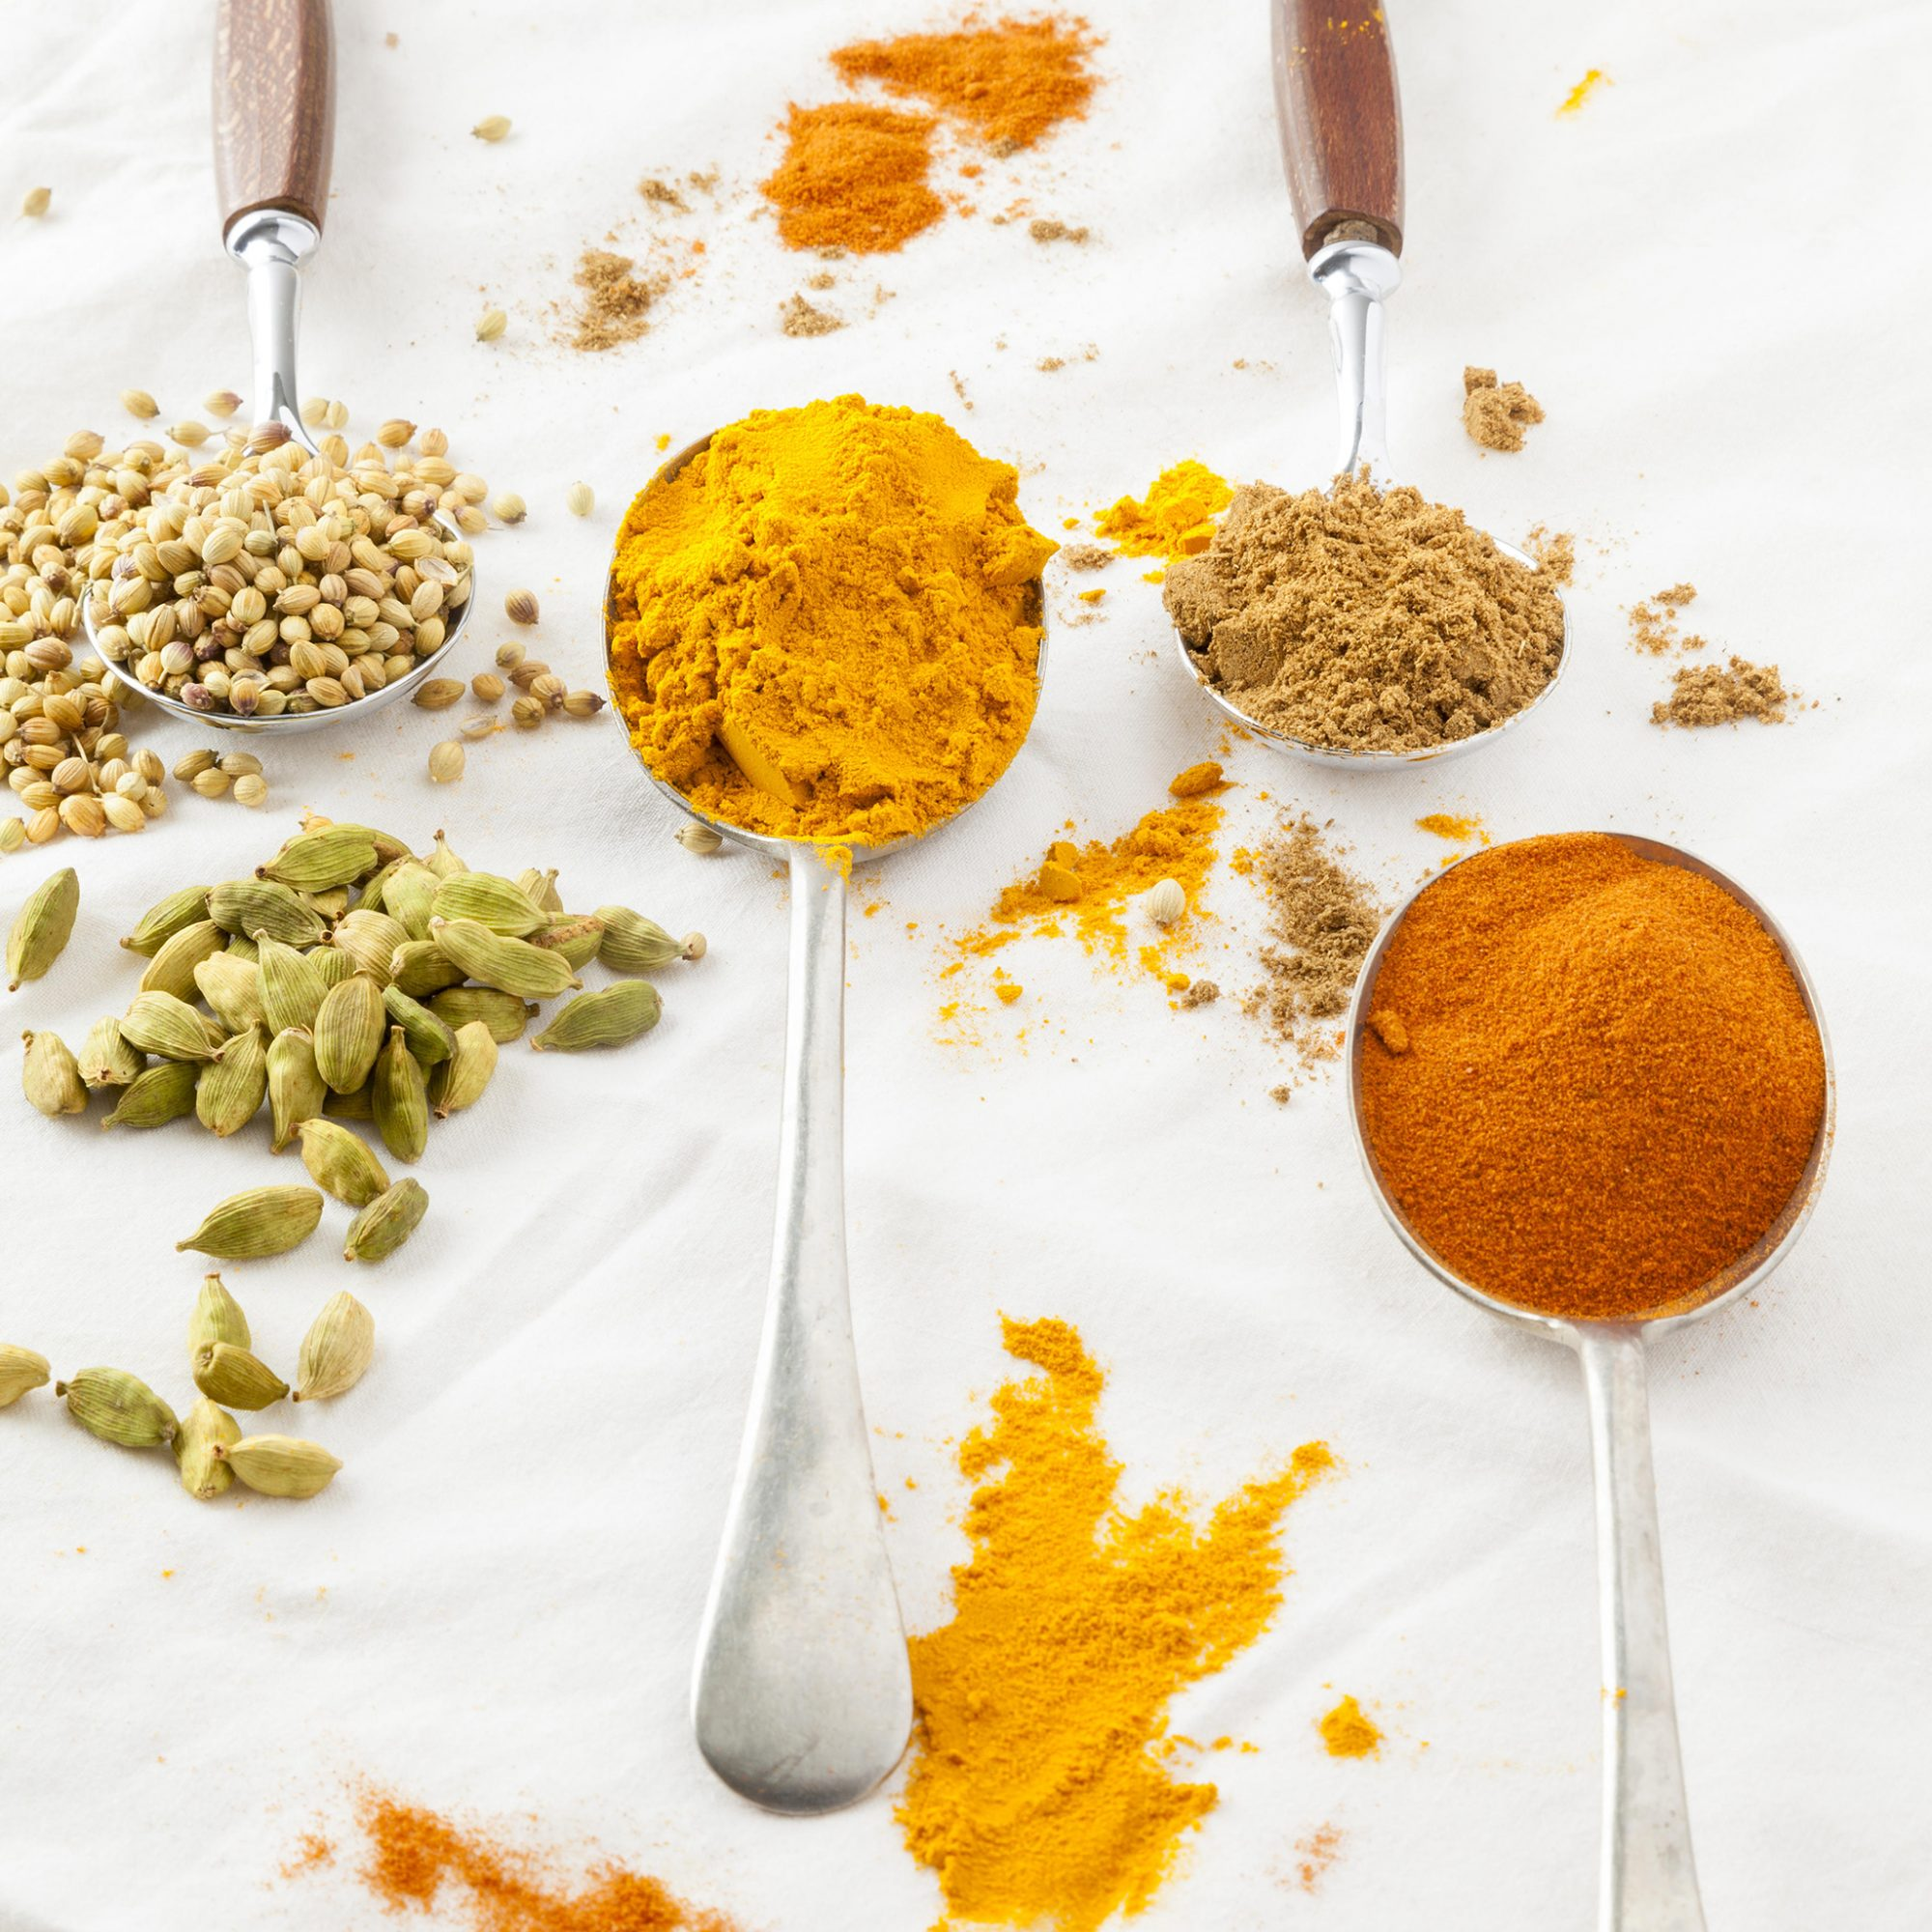 Tracking the Rise of Turmeric and the Popularity of Your Favorite Spices